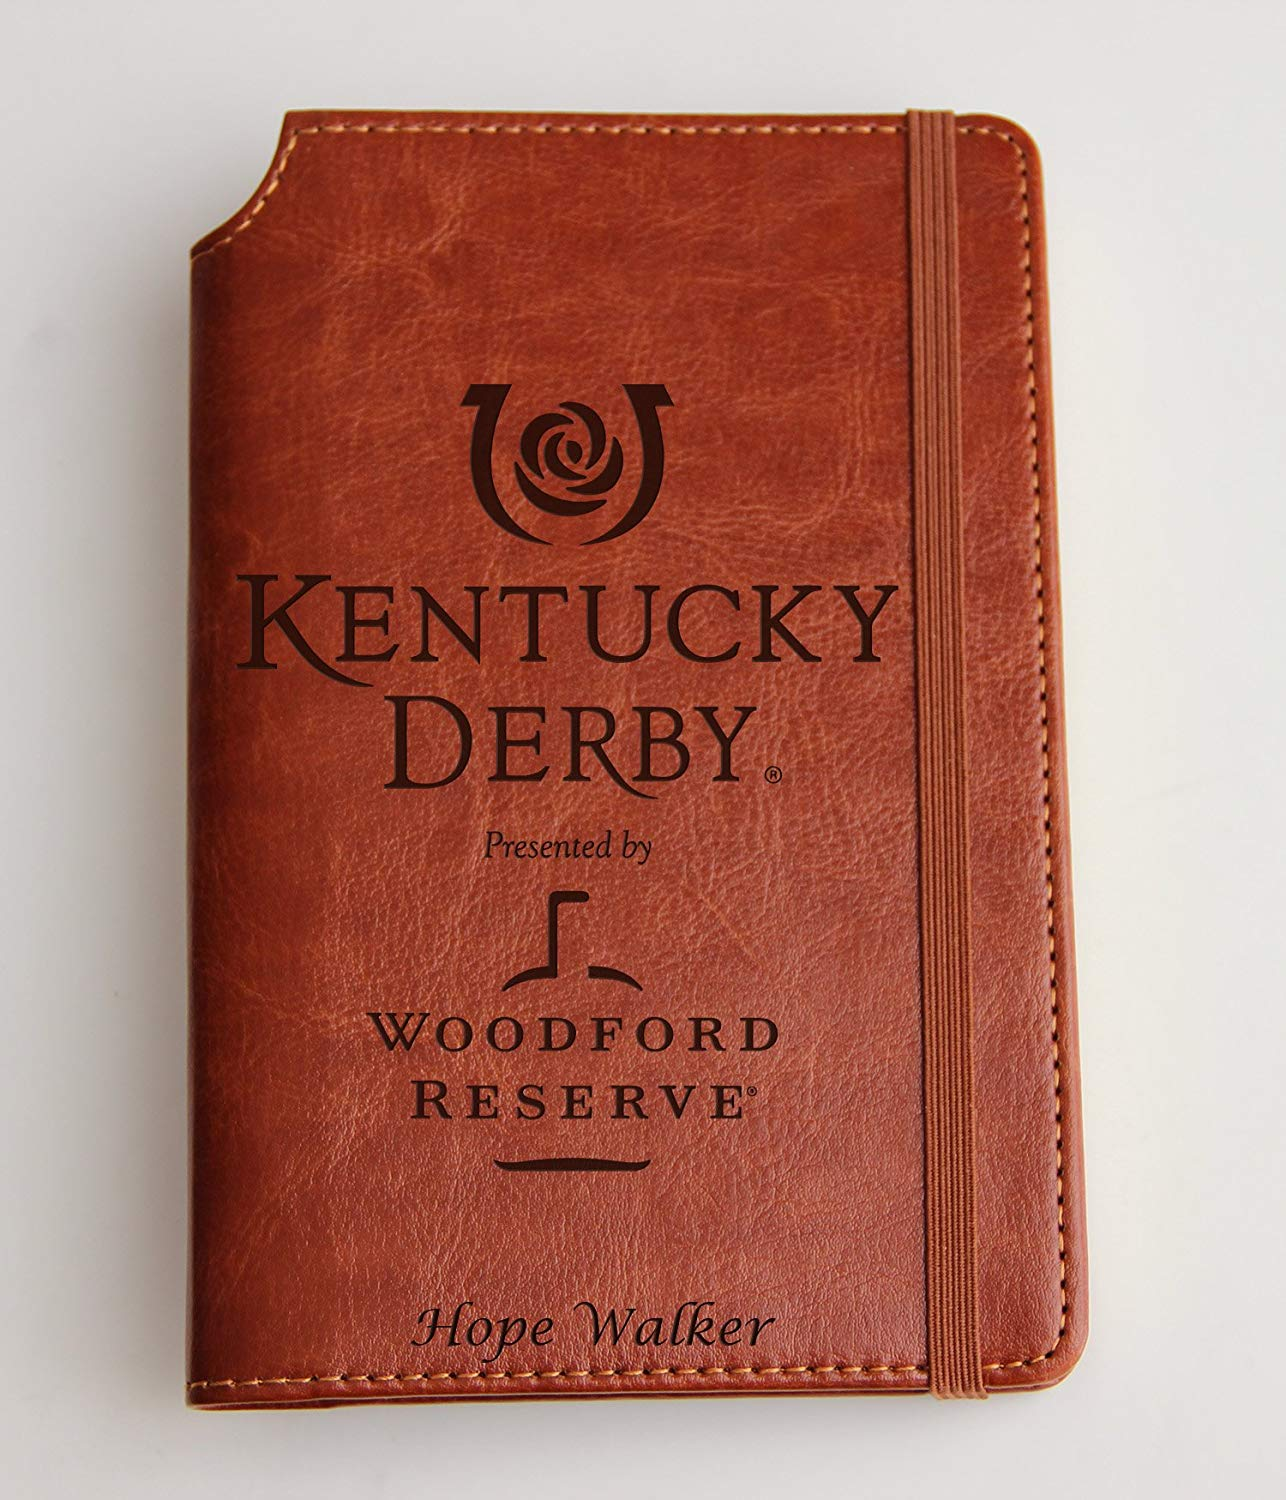 Company Logo Journal laser engraved Journal leather bound, strip with the same color to keep it closed Jack Daniels, Kentucky Derby, woodford Reserve Distillery